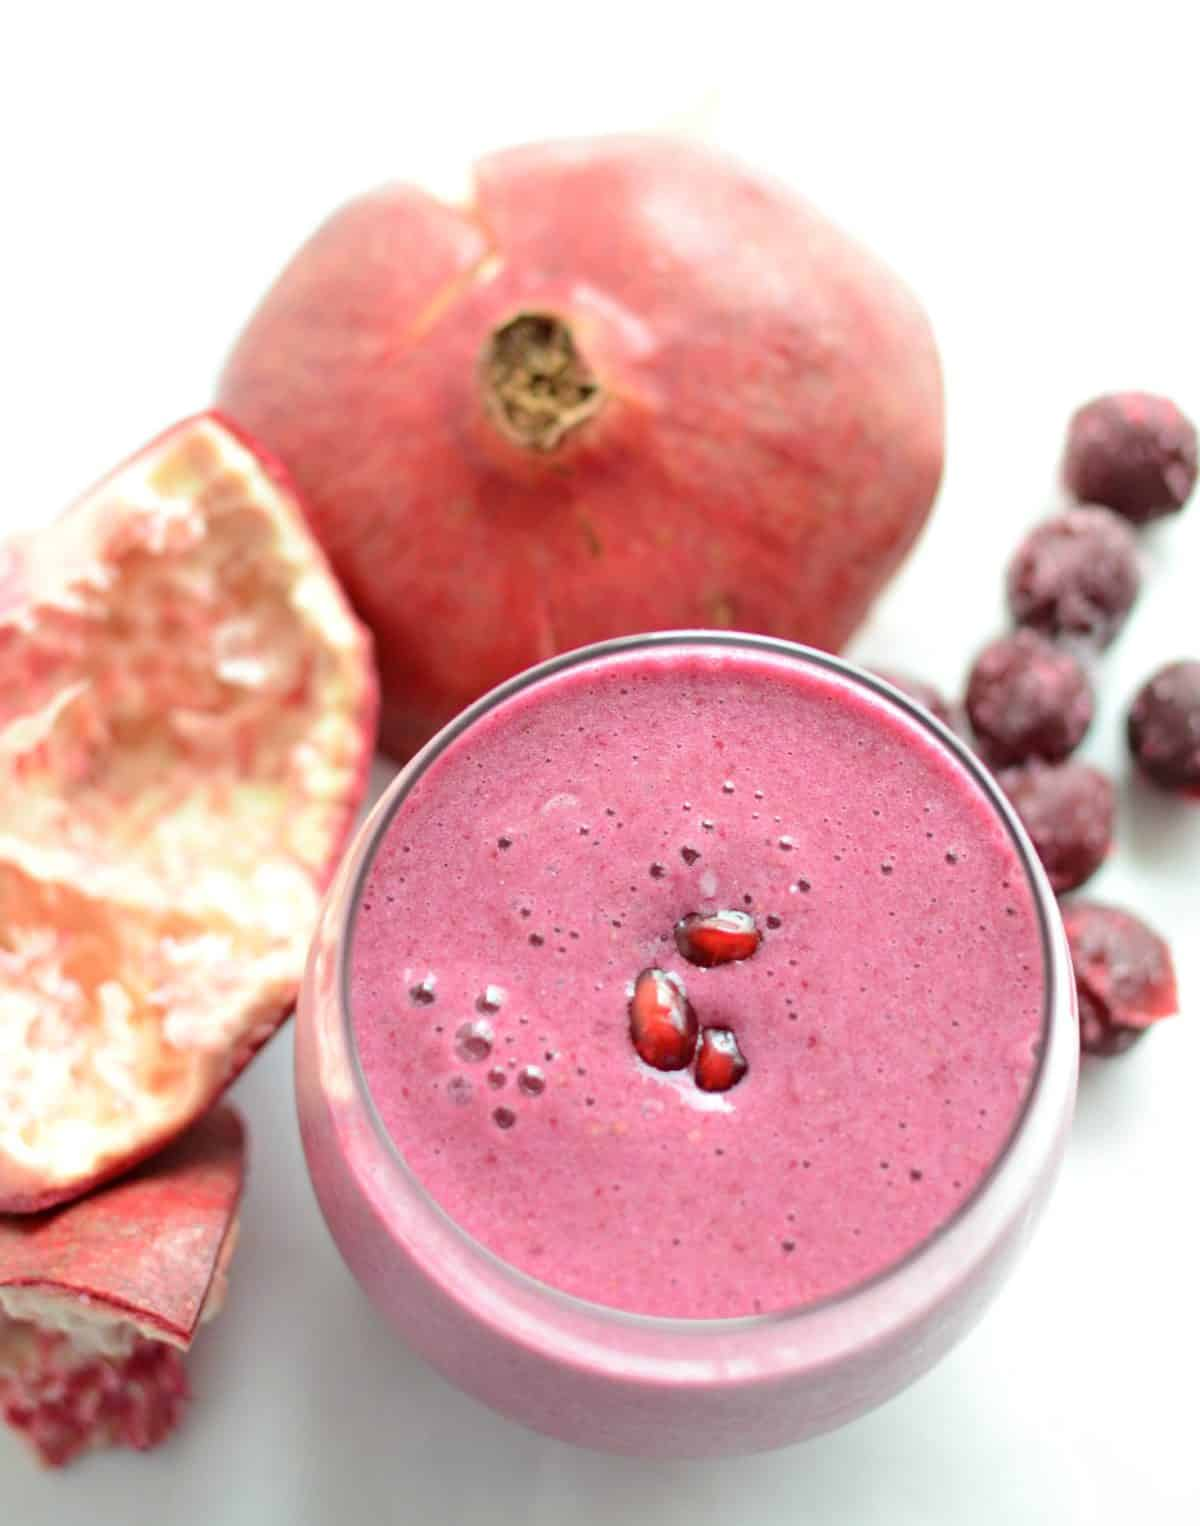 a pink smoothie in a glass cup with a pomegranate and pomegranate seeds to the side